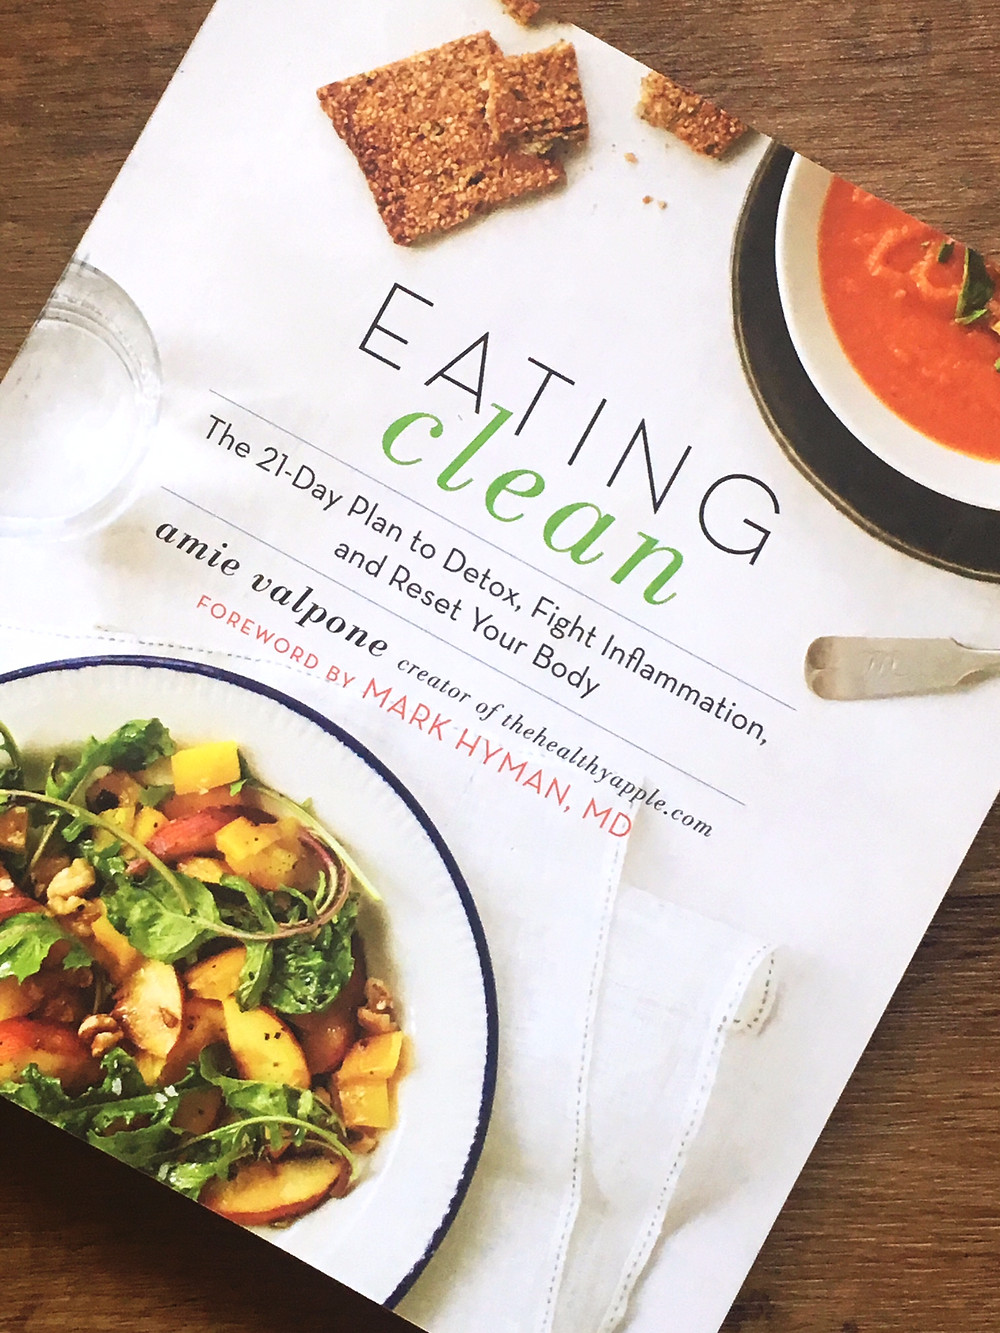 Eating Clean by Amie Valpone: The 21-Day Plan to Detox